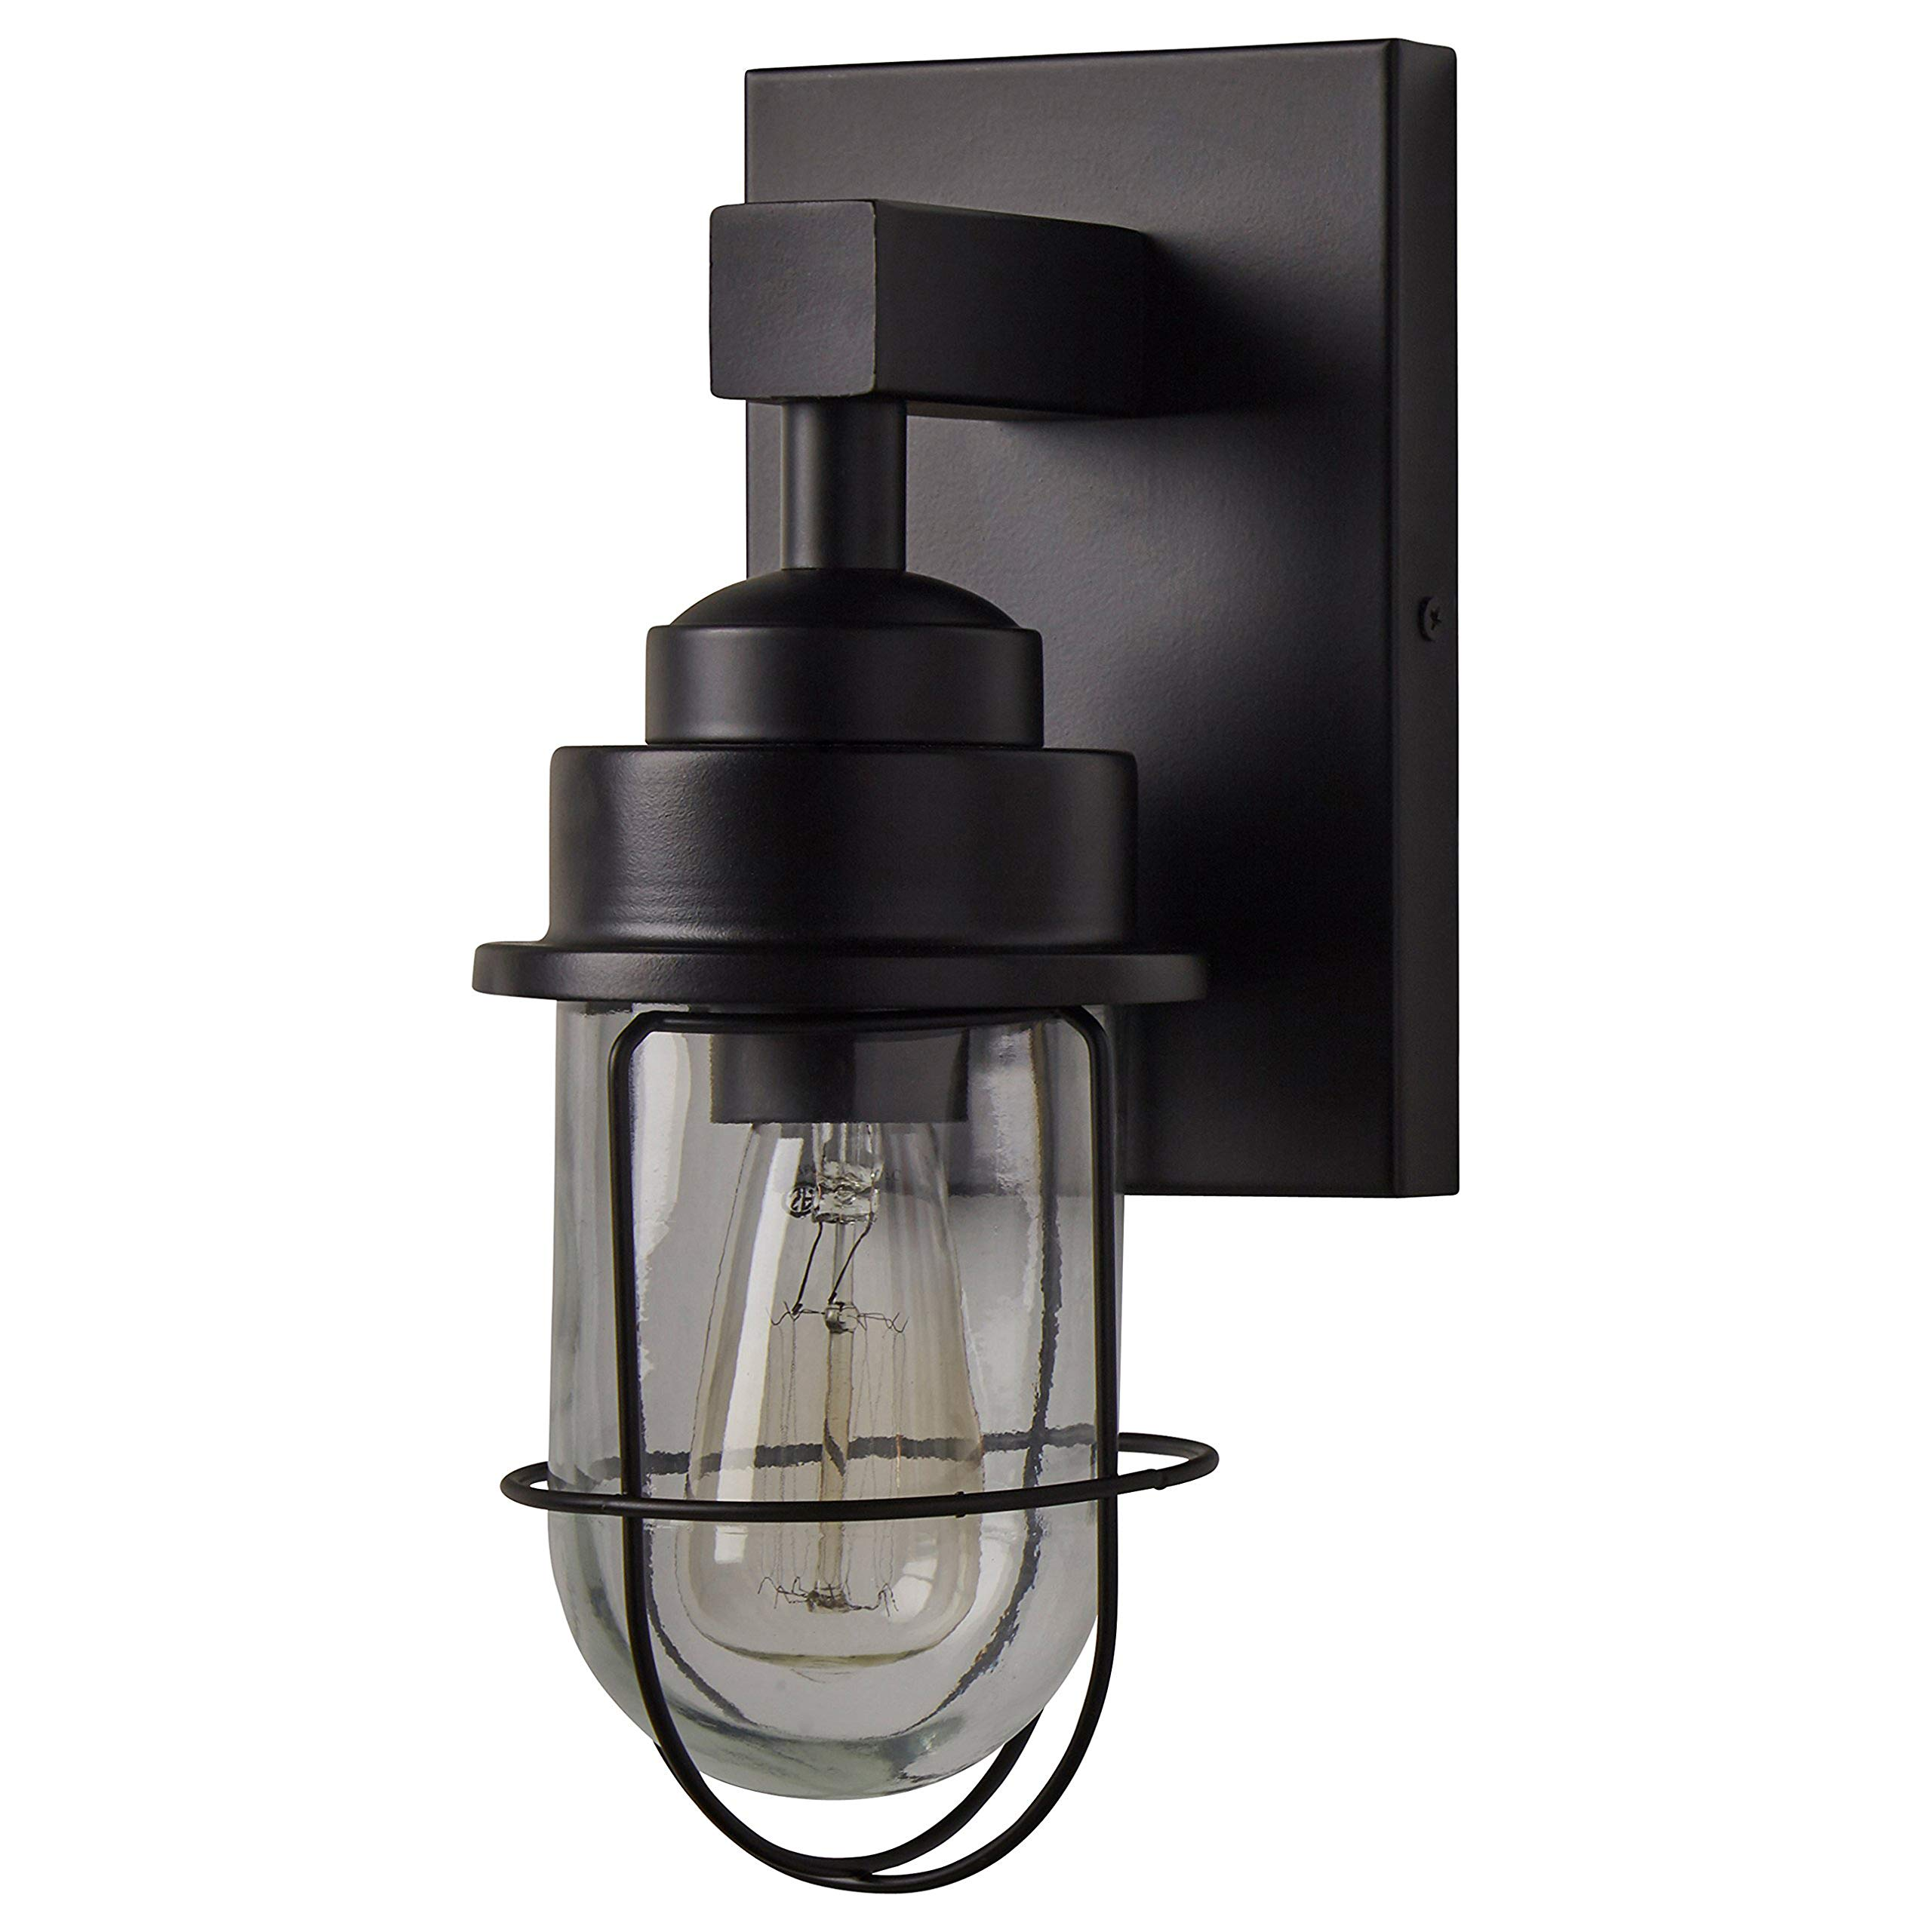 Stone & Beam Jordan Industrial Farmhouse Indoor Wall Mount Cage Sconce Fixture With Light Bulb - 5.5 x 74.75 x 11 Inches, Black